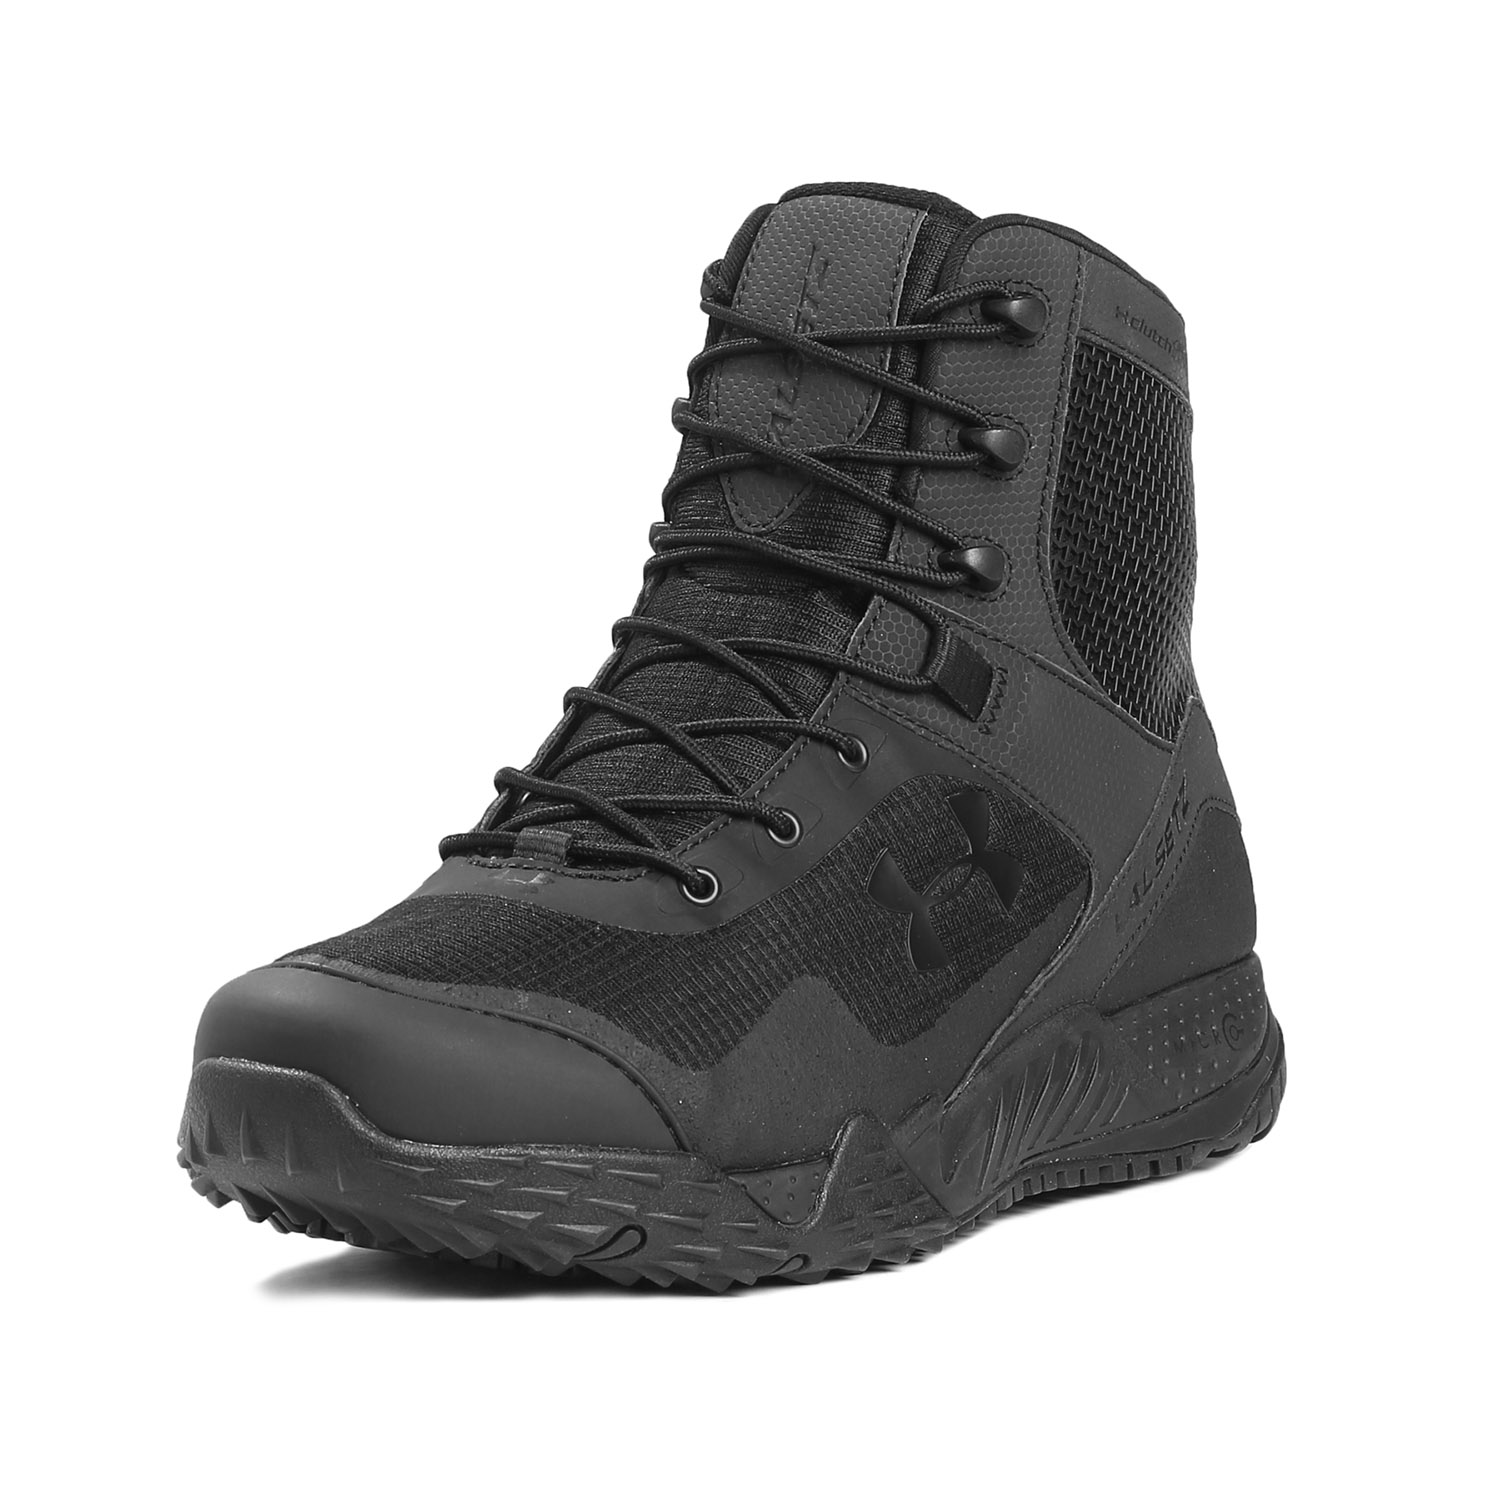 under armour boot warranty